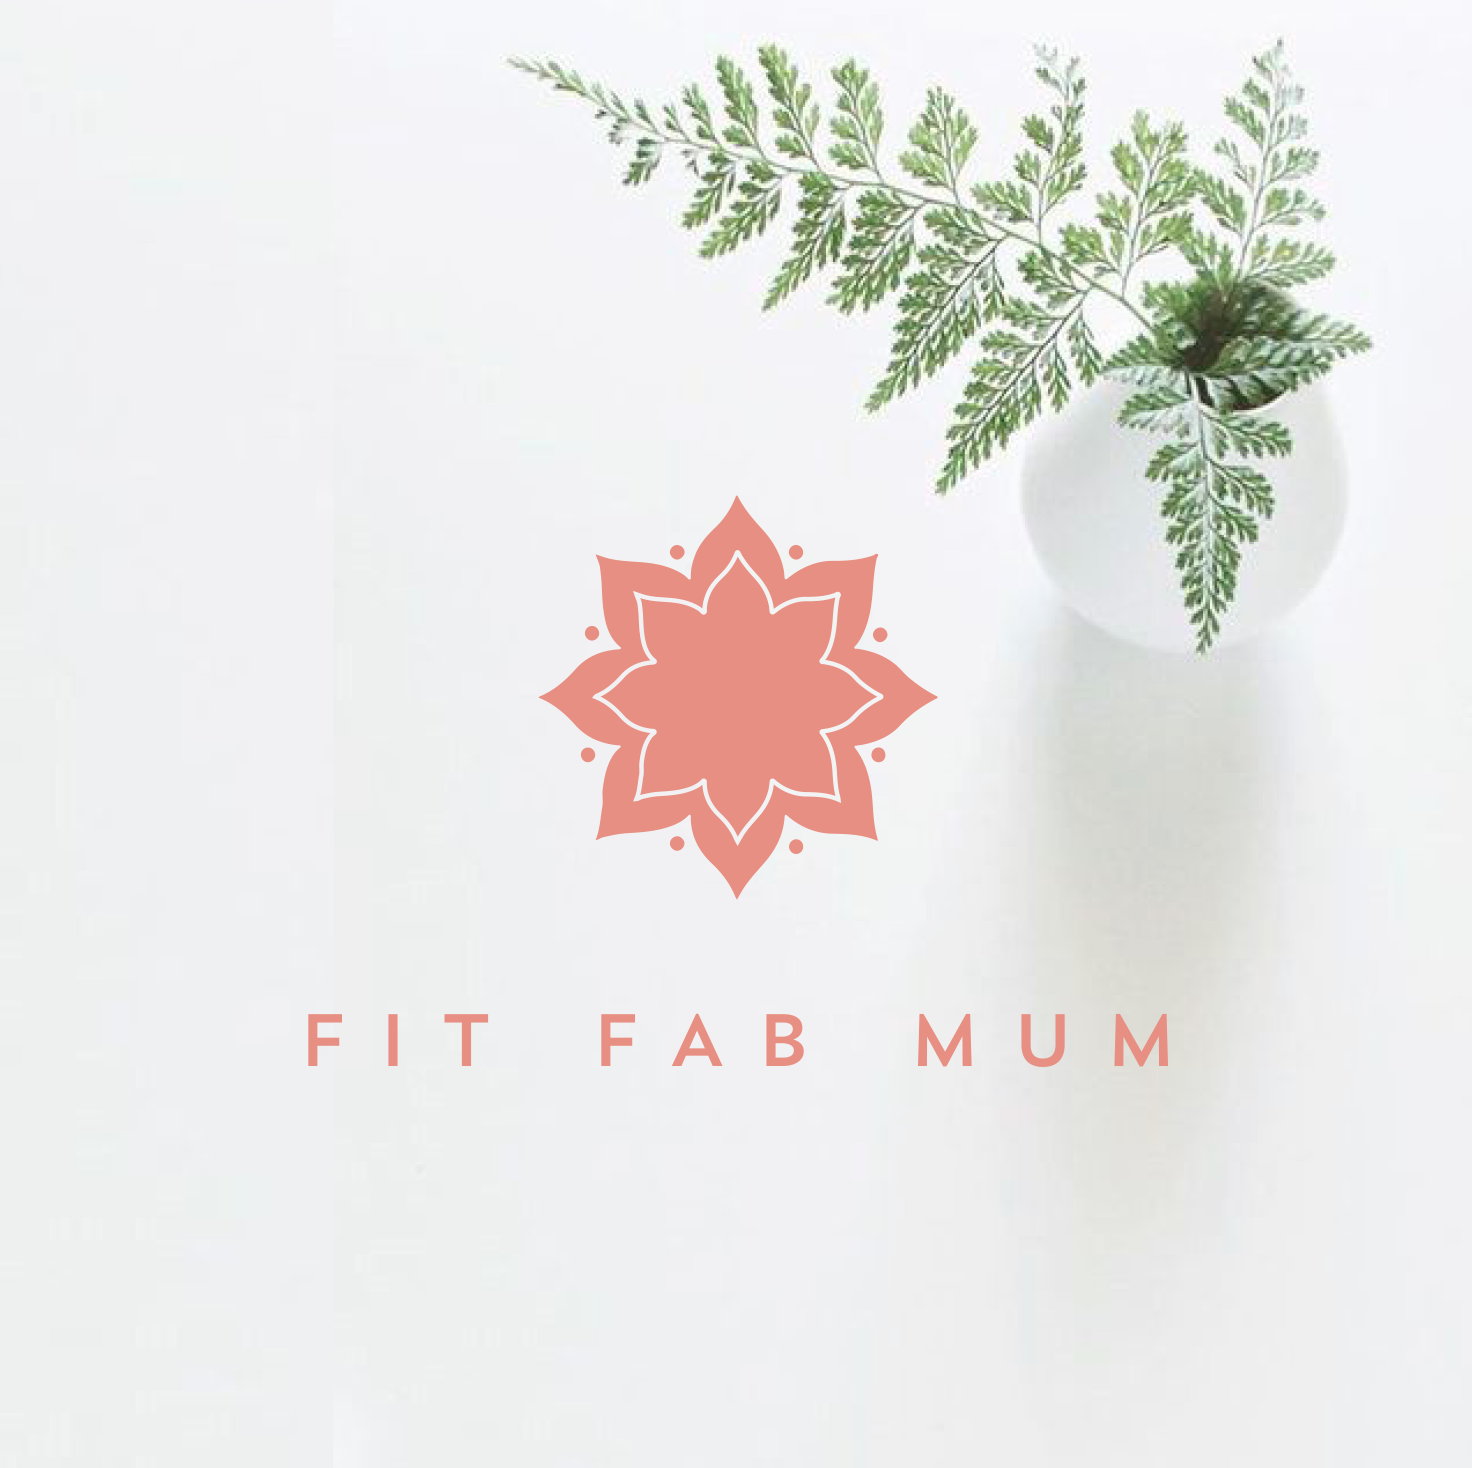 Fit fab mum logo on white background with pink lettering and pink mandala